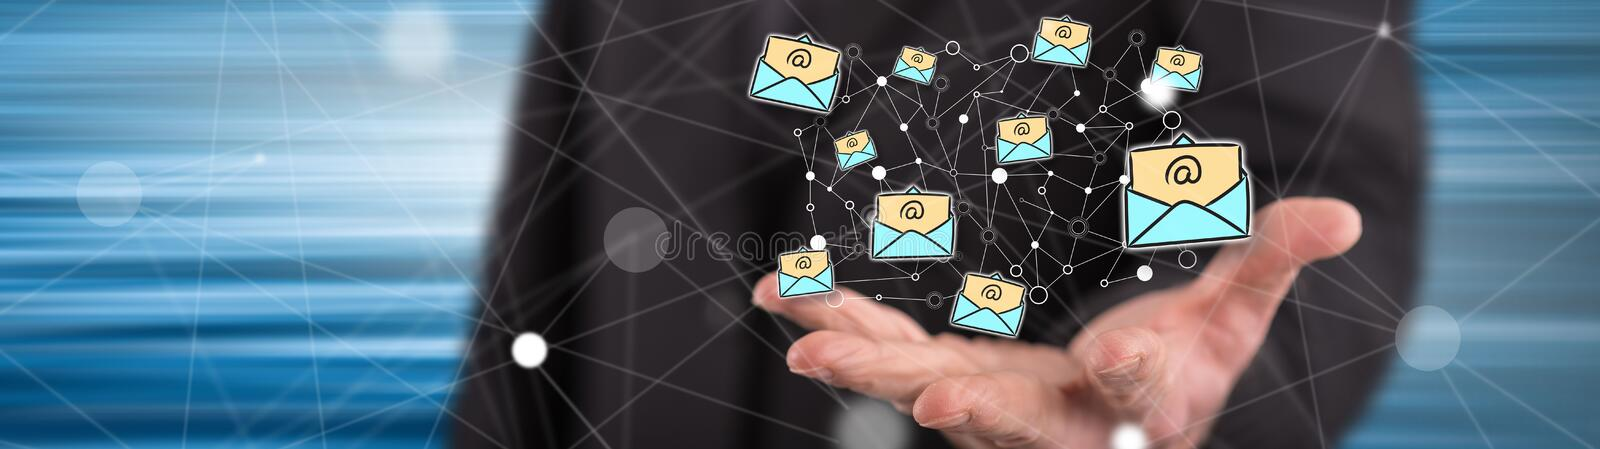 Concept of e-mail. E-mail concept above the hand of a man in background stock image